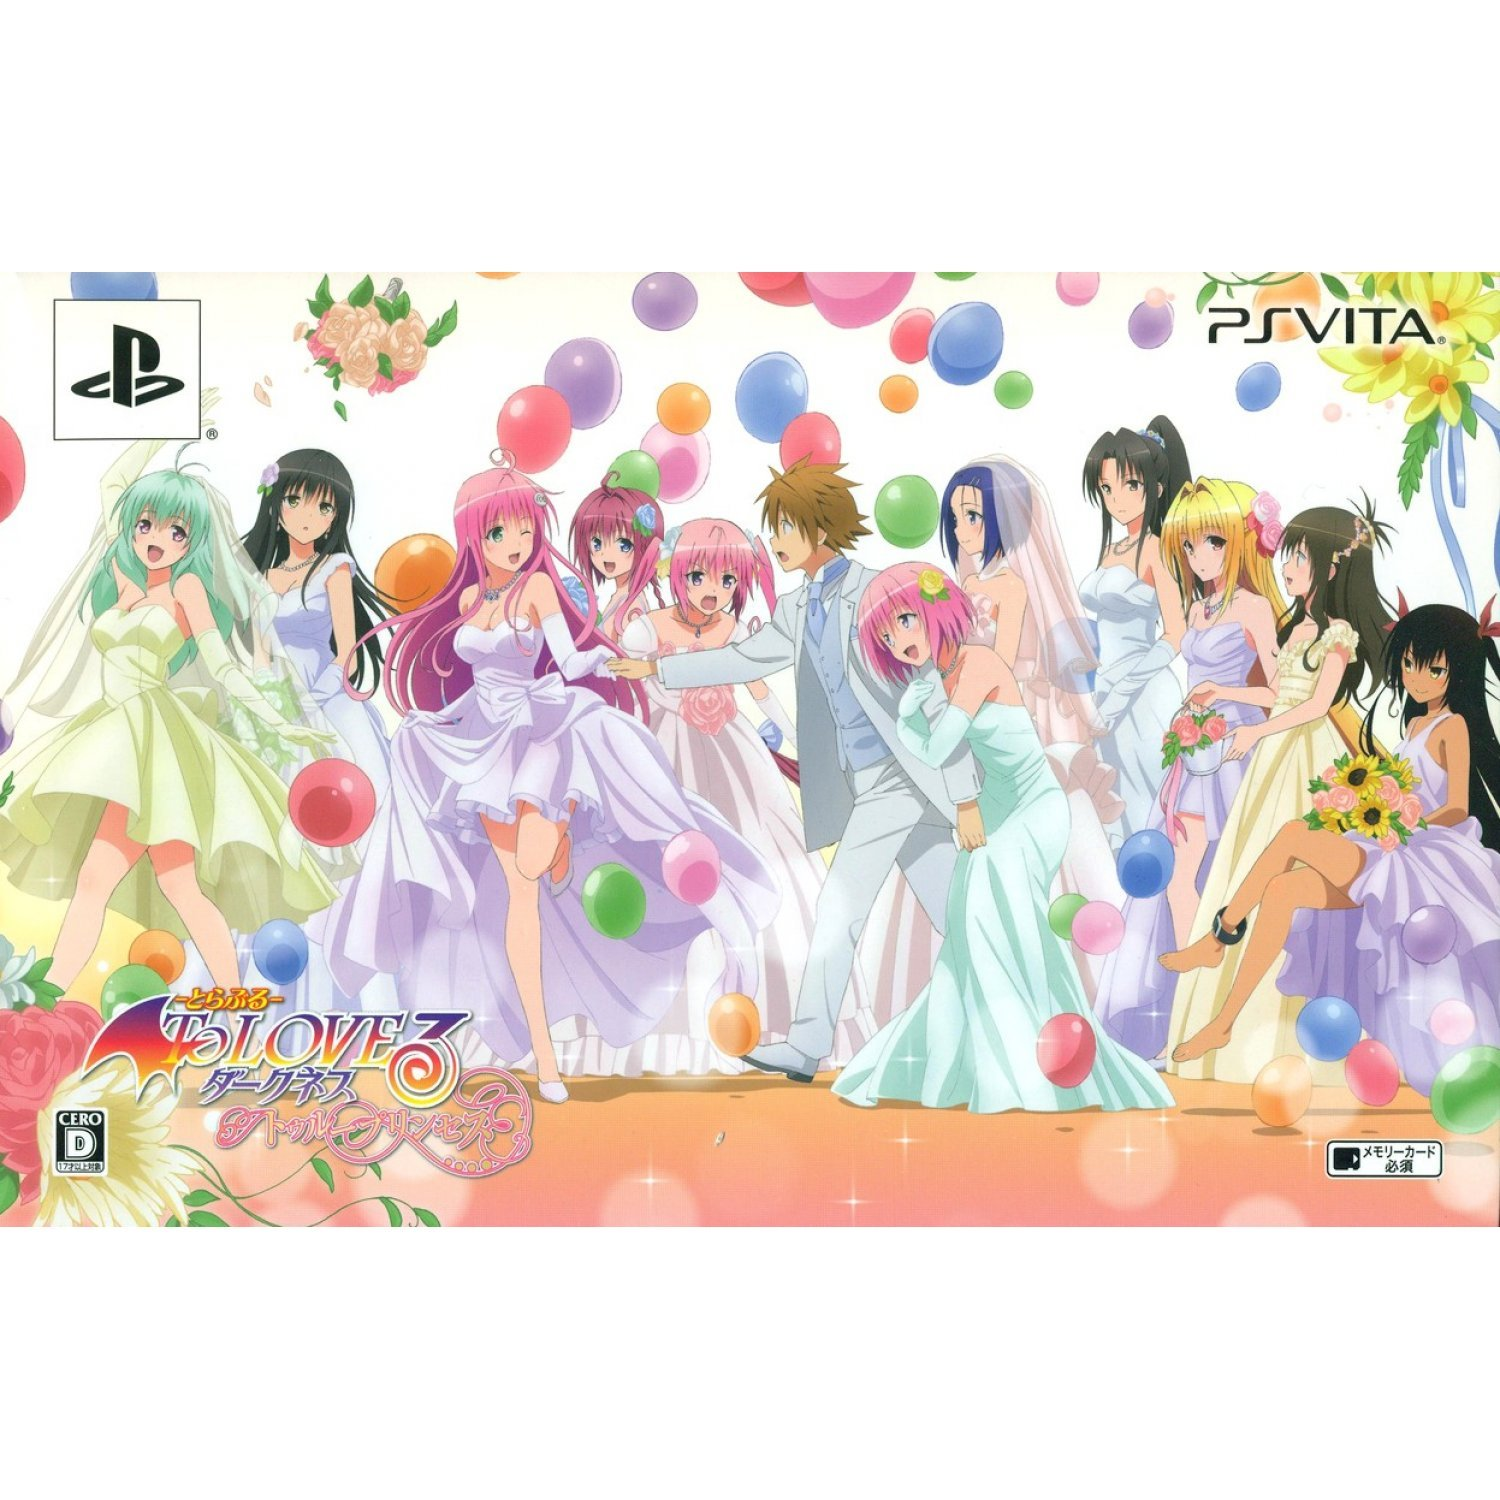 To Love Ru Trouble Darkness True Princess Limited Edition